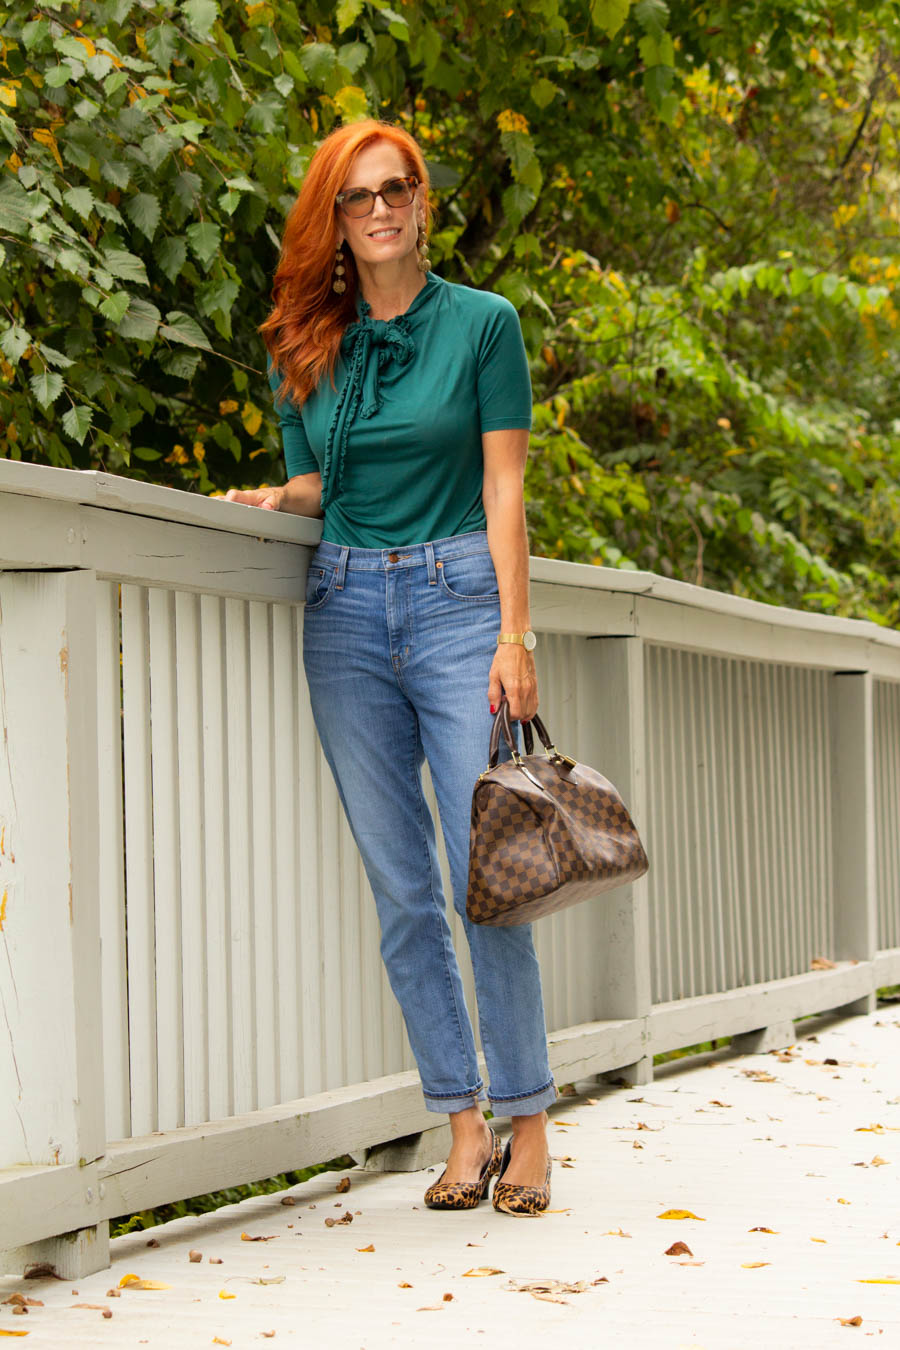 Teal blouse with boy jeans